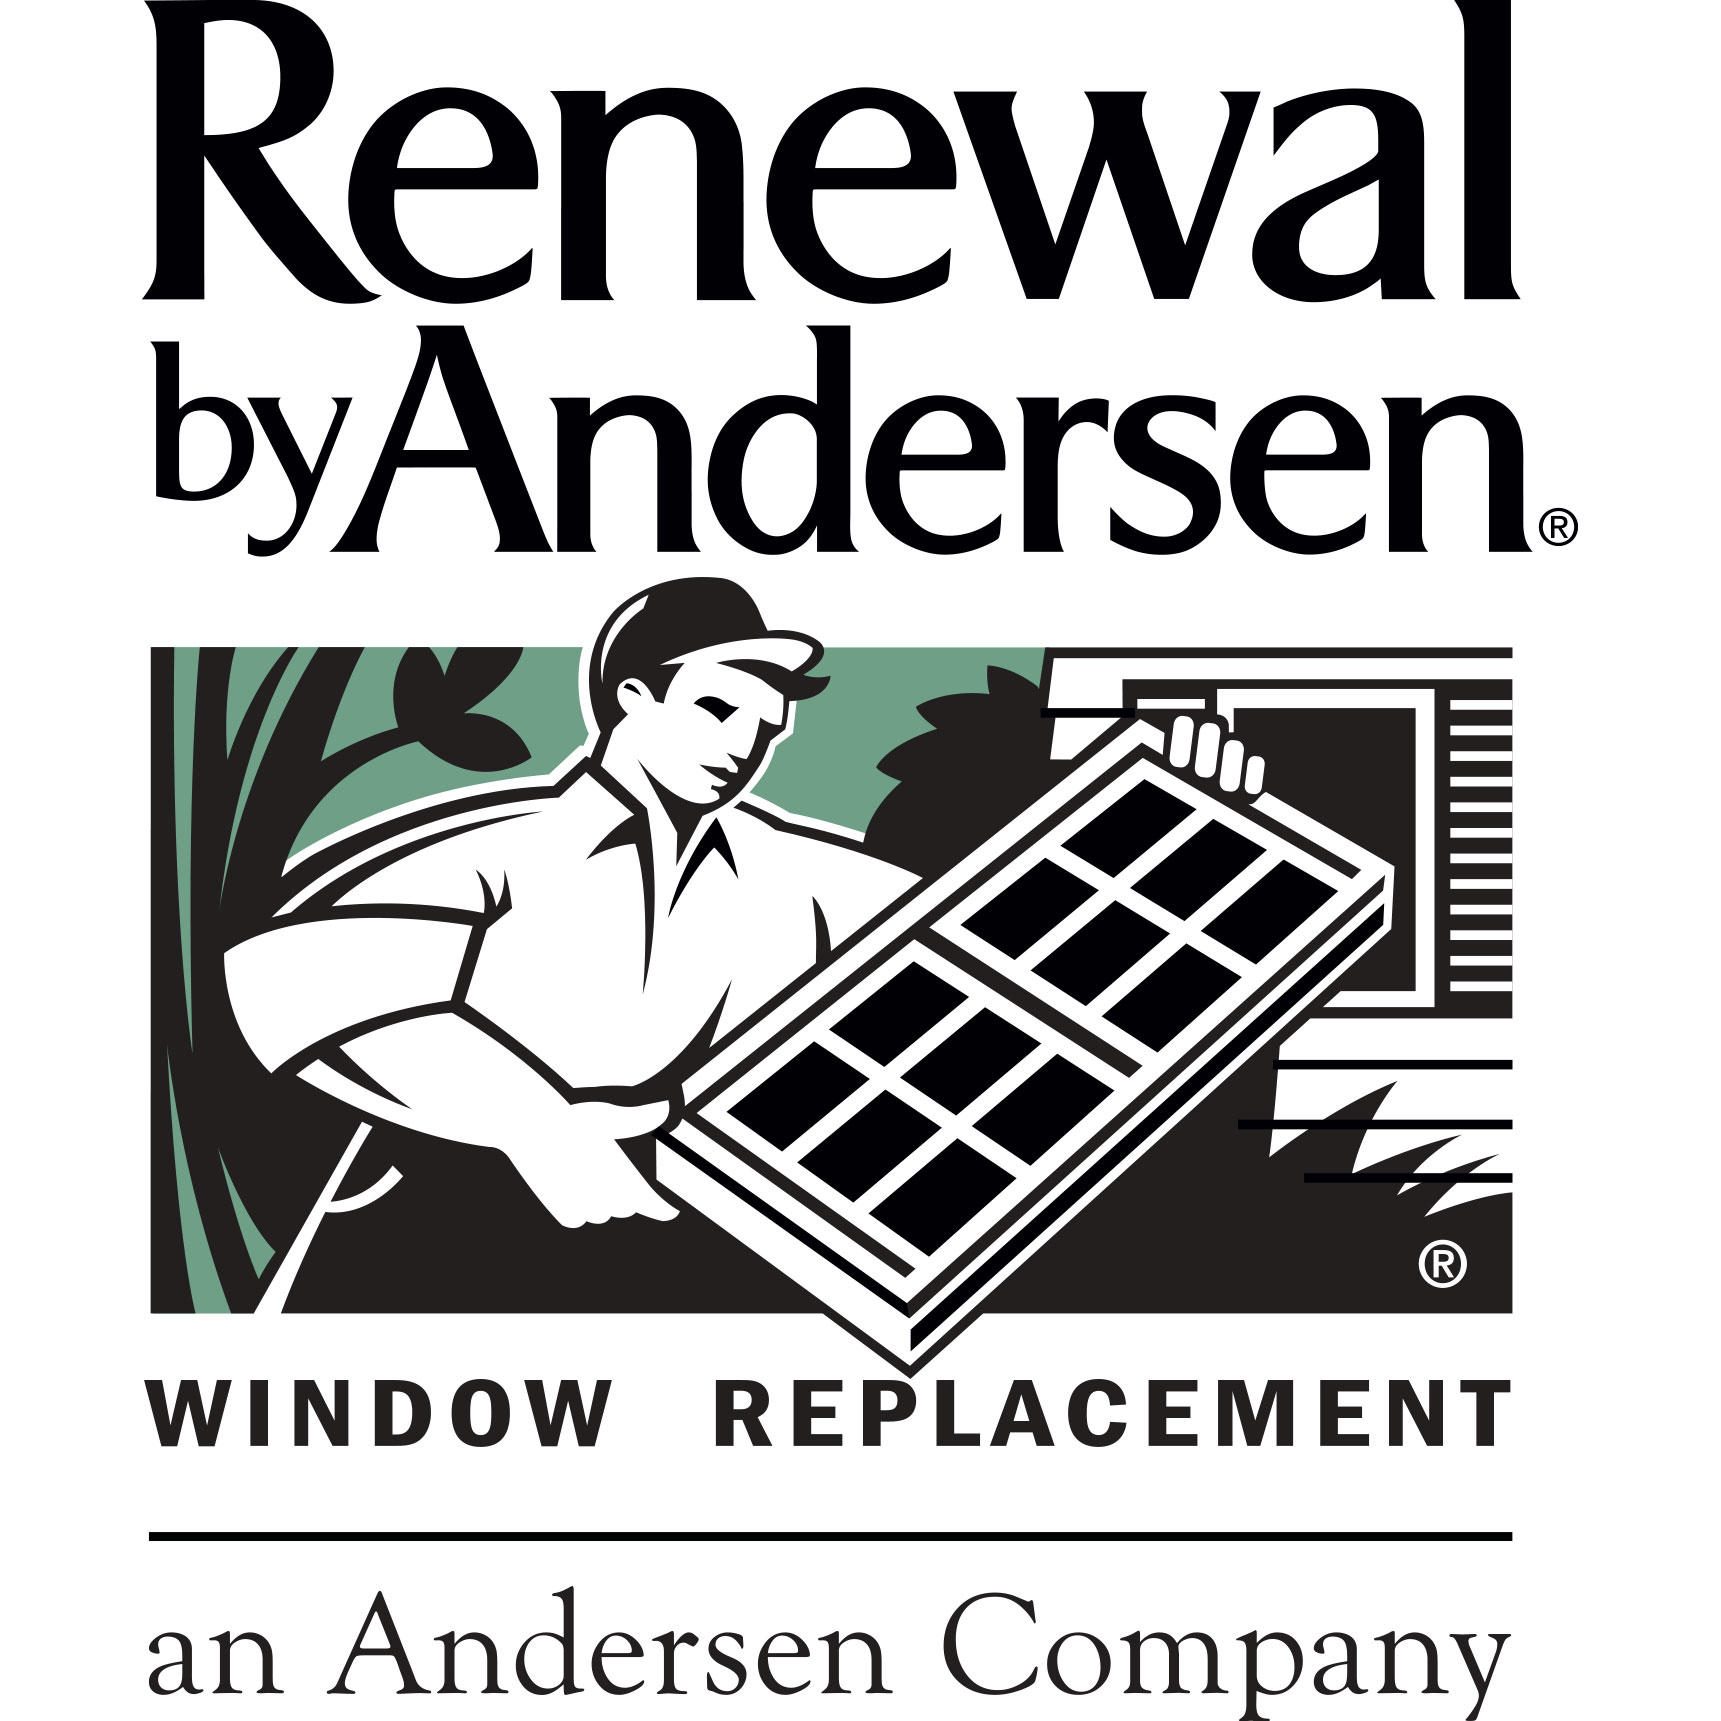 Renewal by Andersen of Des Moines - West Des Moines, IA - Windows & Door Contractors